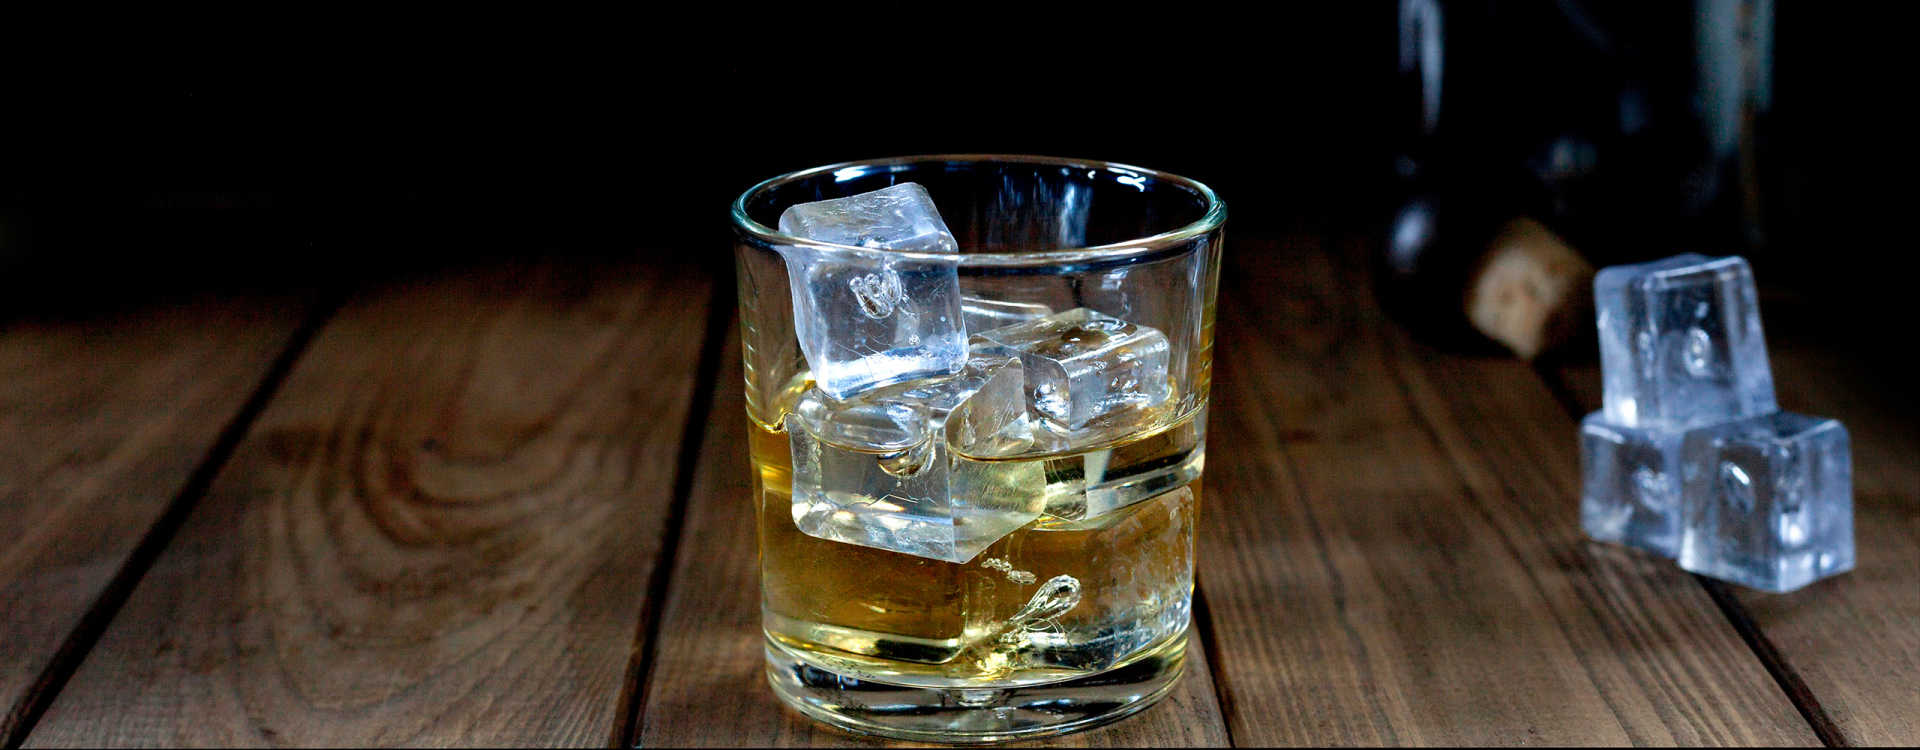 Image for Blended Scotch content section